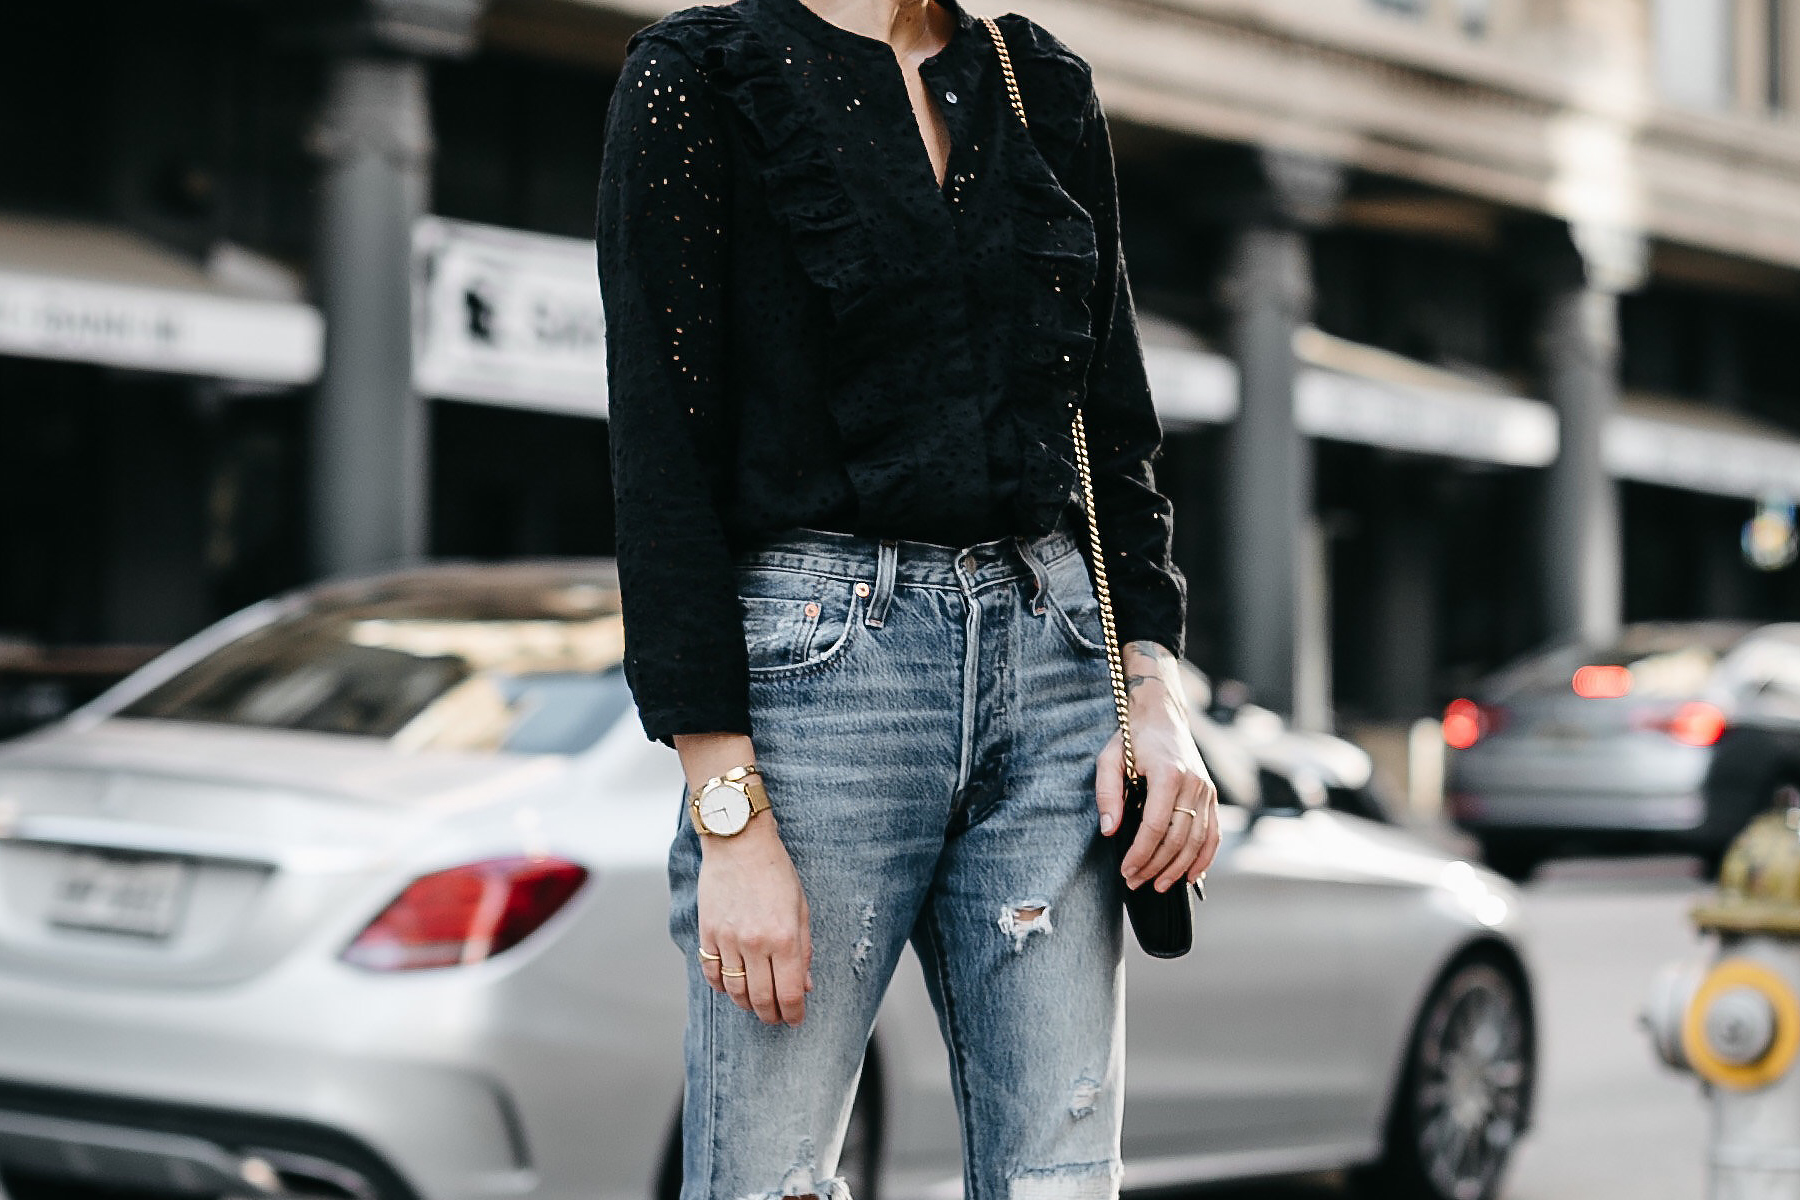 Madewell Black Eyelet Blouse Denim Ripped Jeans Fashion Jackson Dallas Blogger Fashion Blogger Street Style